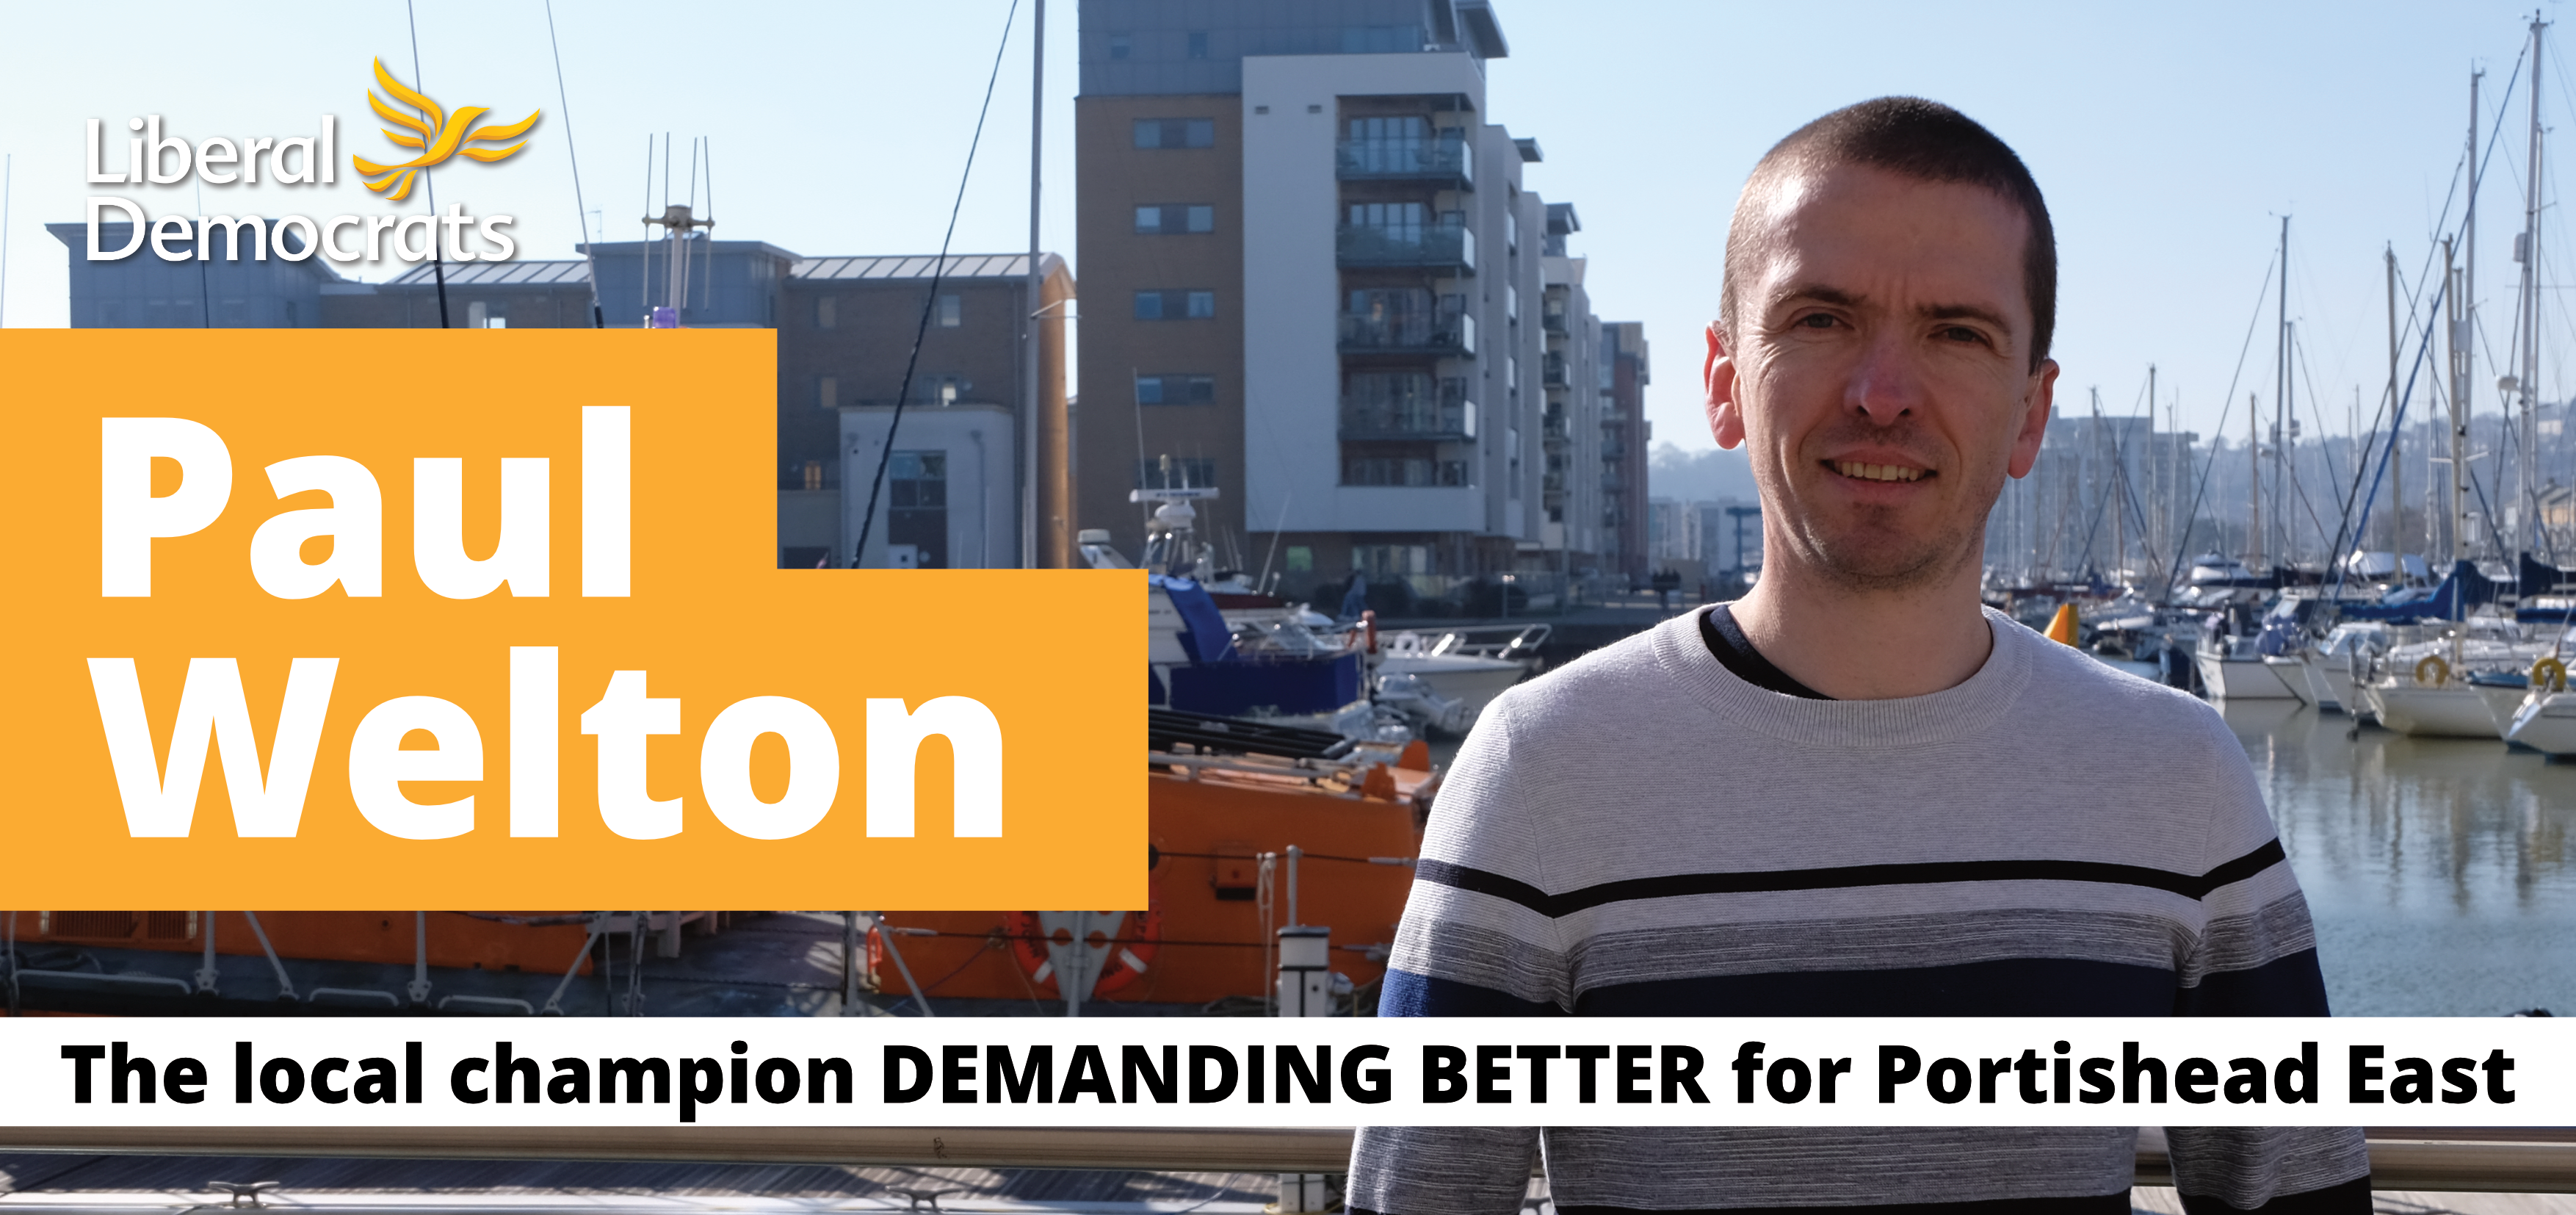 Paul Welton demanding better for Portishead East